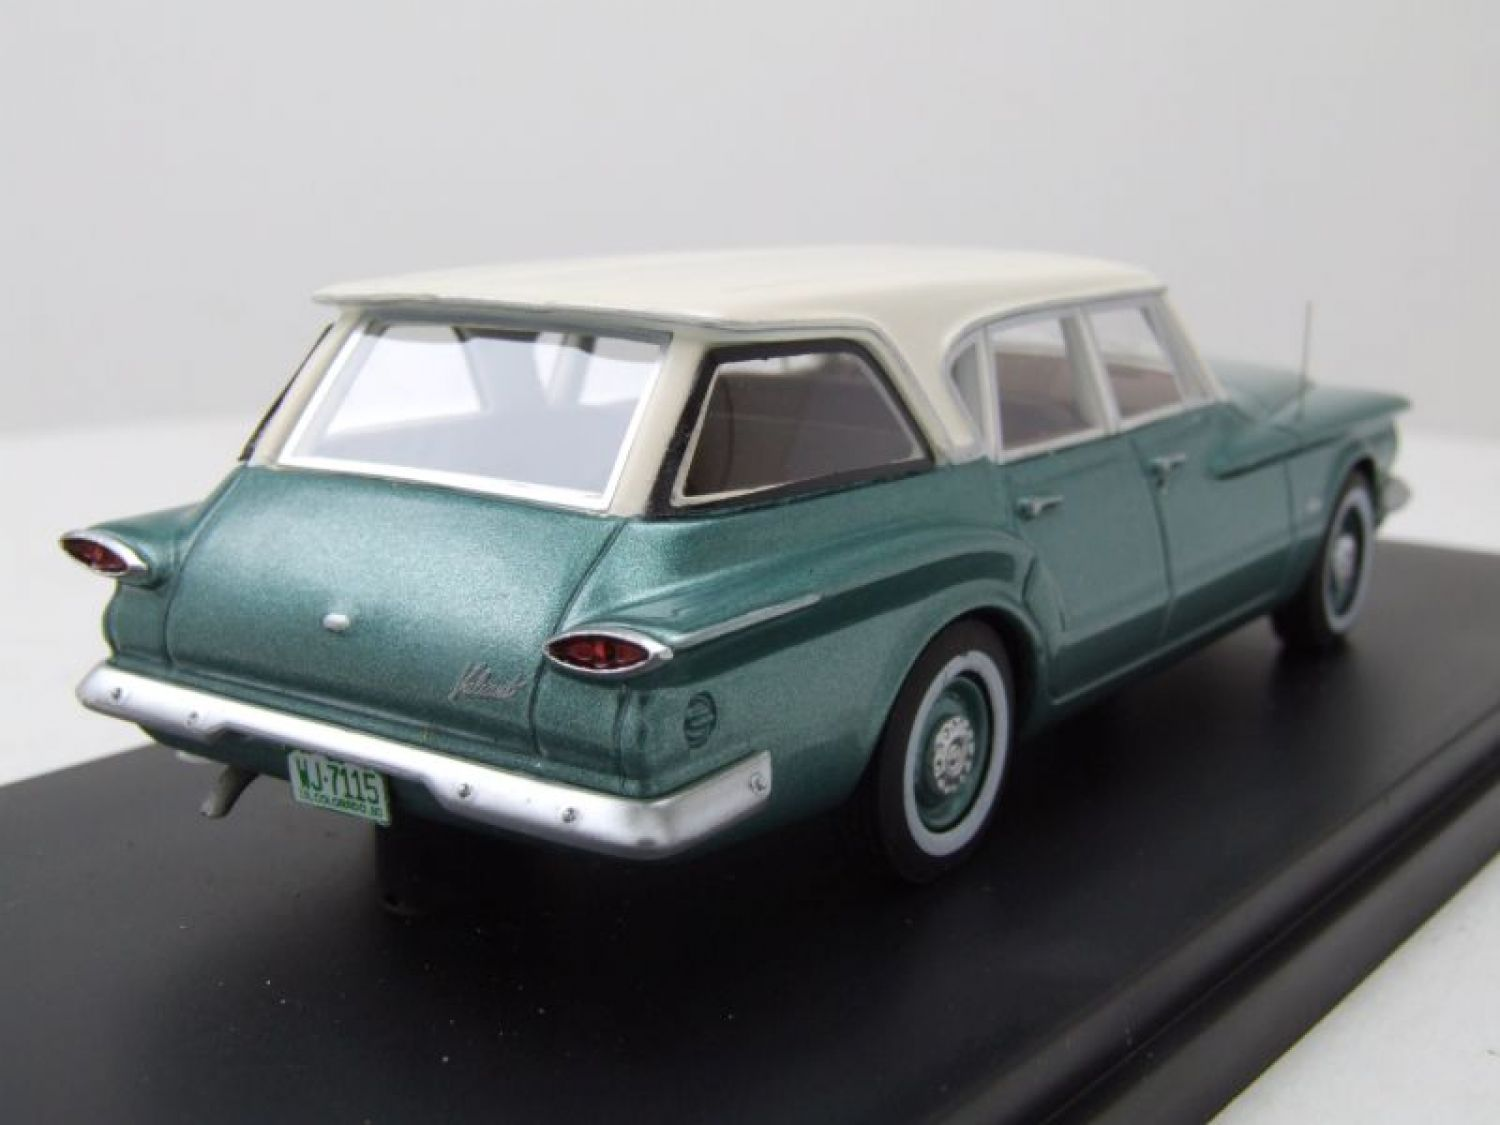 Plymouth Valiant Station Wagon Kombi 1960 Grn Wei Modellauto 143 1941 Neo Scale Models